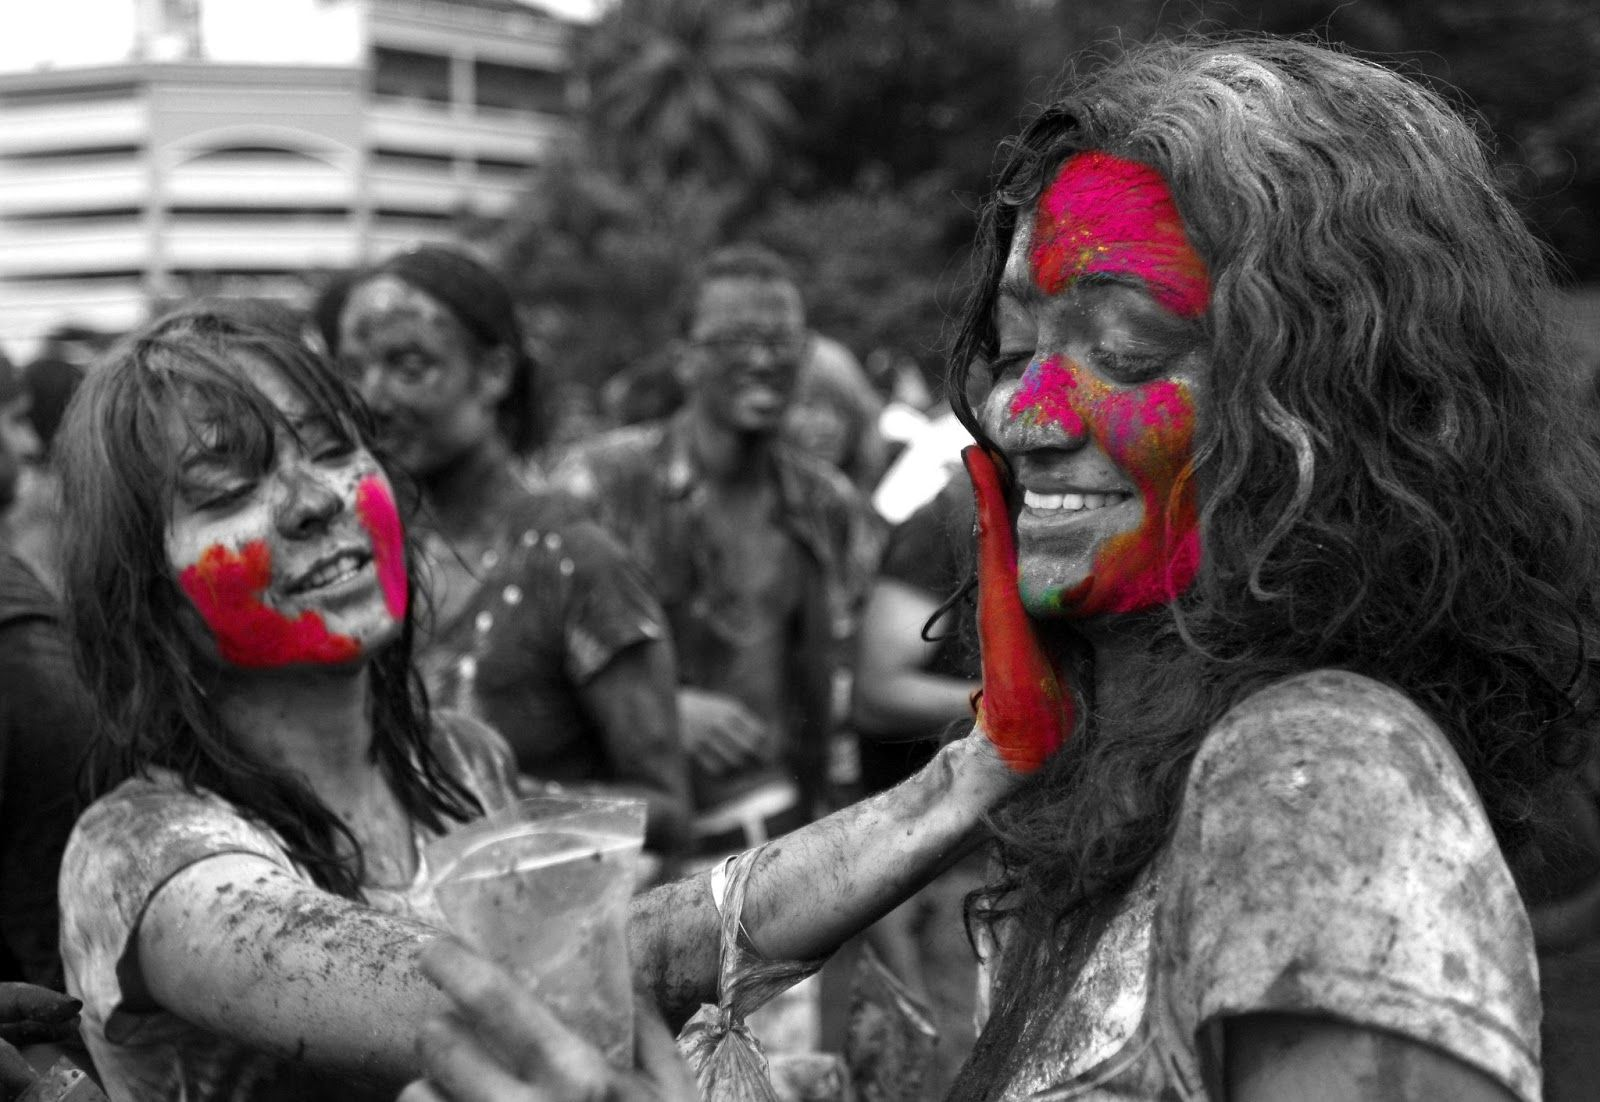 Holi Indian Festival Black And White Photography With Color - Black and white photography with color accents